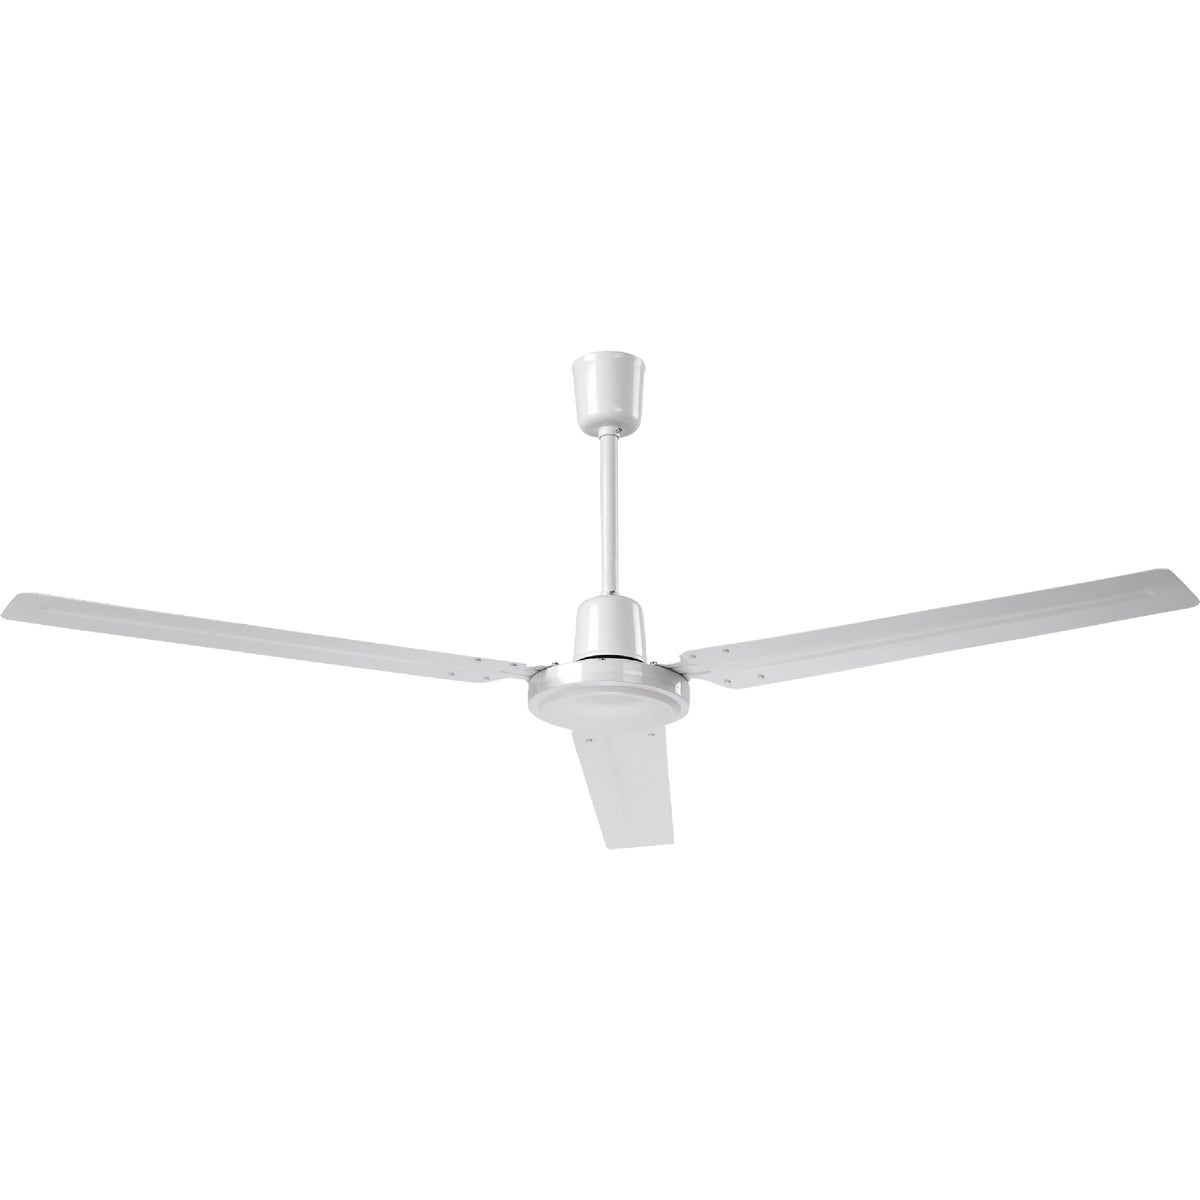 "56"" WHITE CEILING FAN"